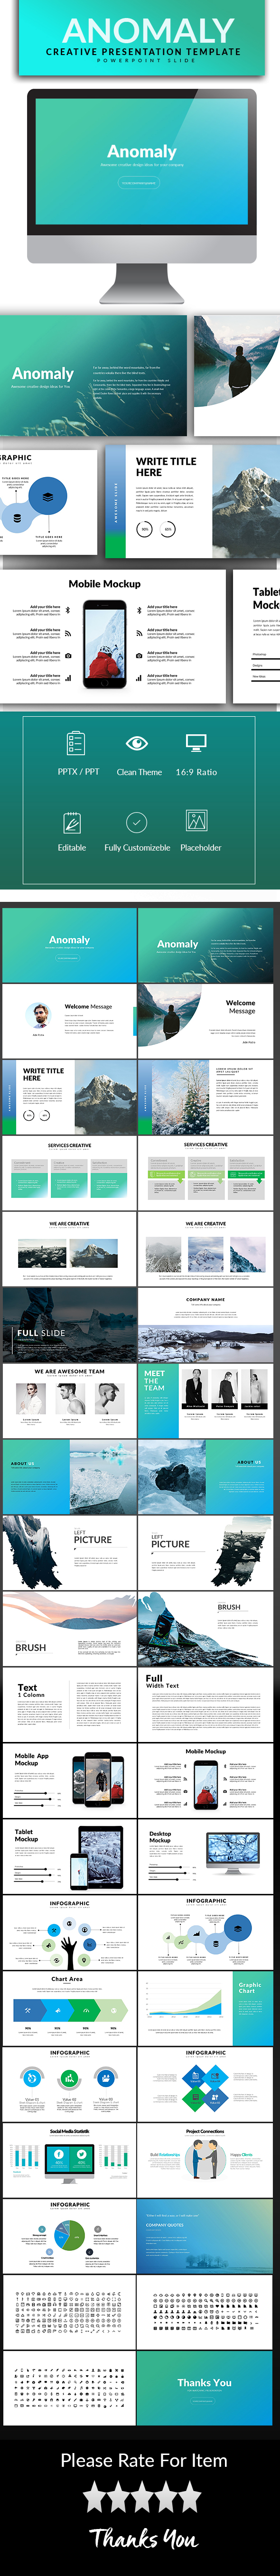 Dynamic Templates v205 The Next Generation  DIY Planner